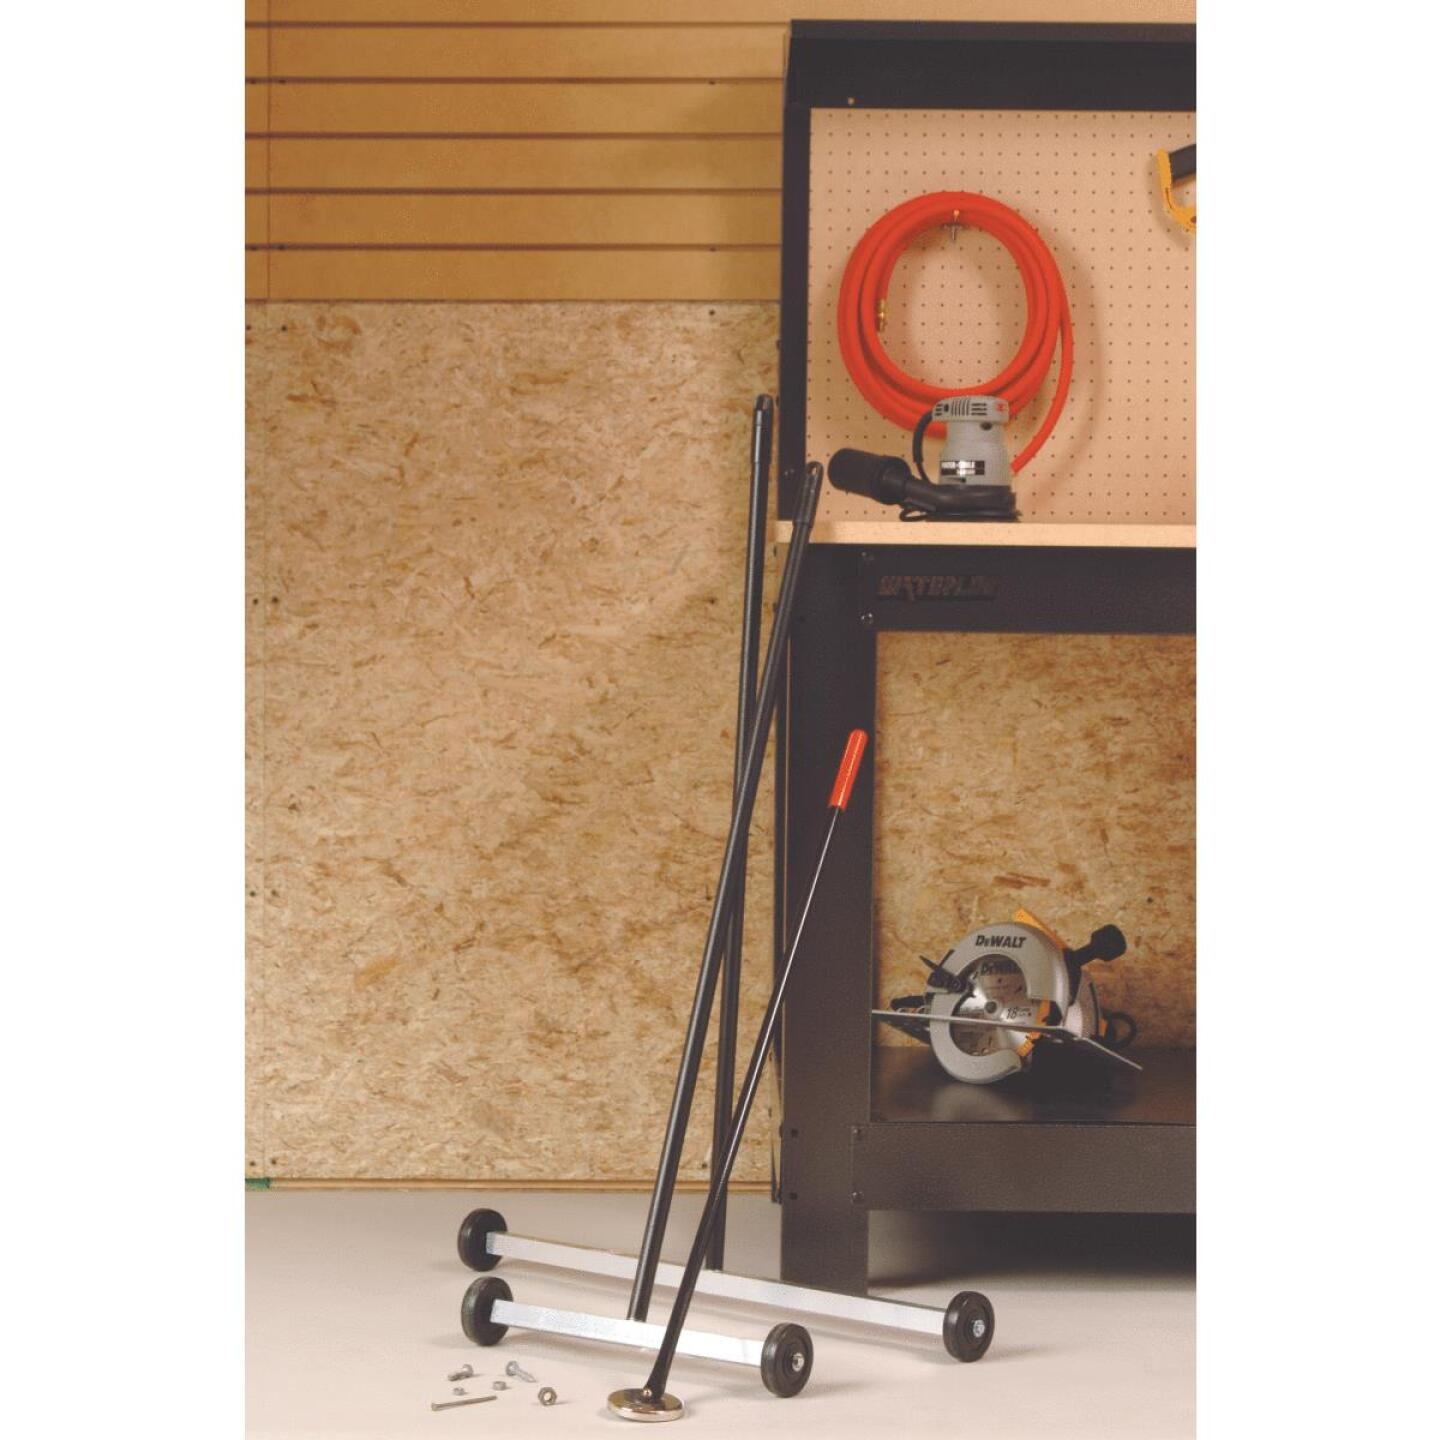 Master Magnetics 29 in. Magnetic Floor Sweeper Image 3